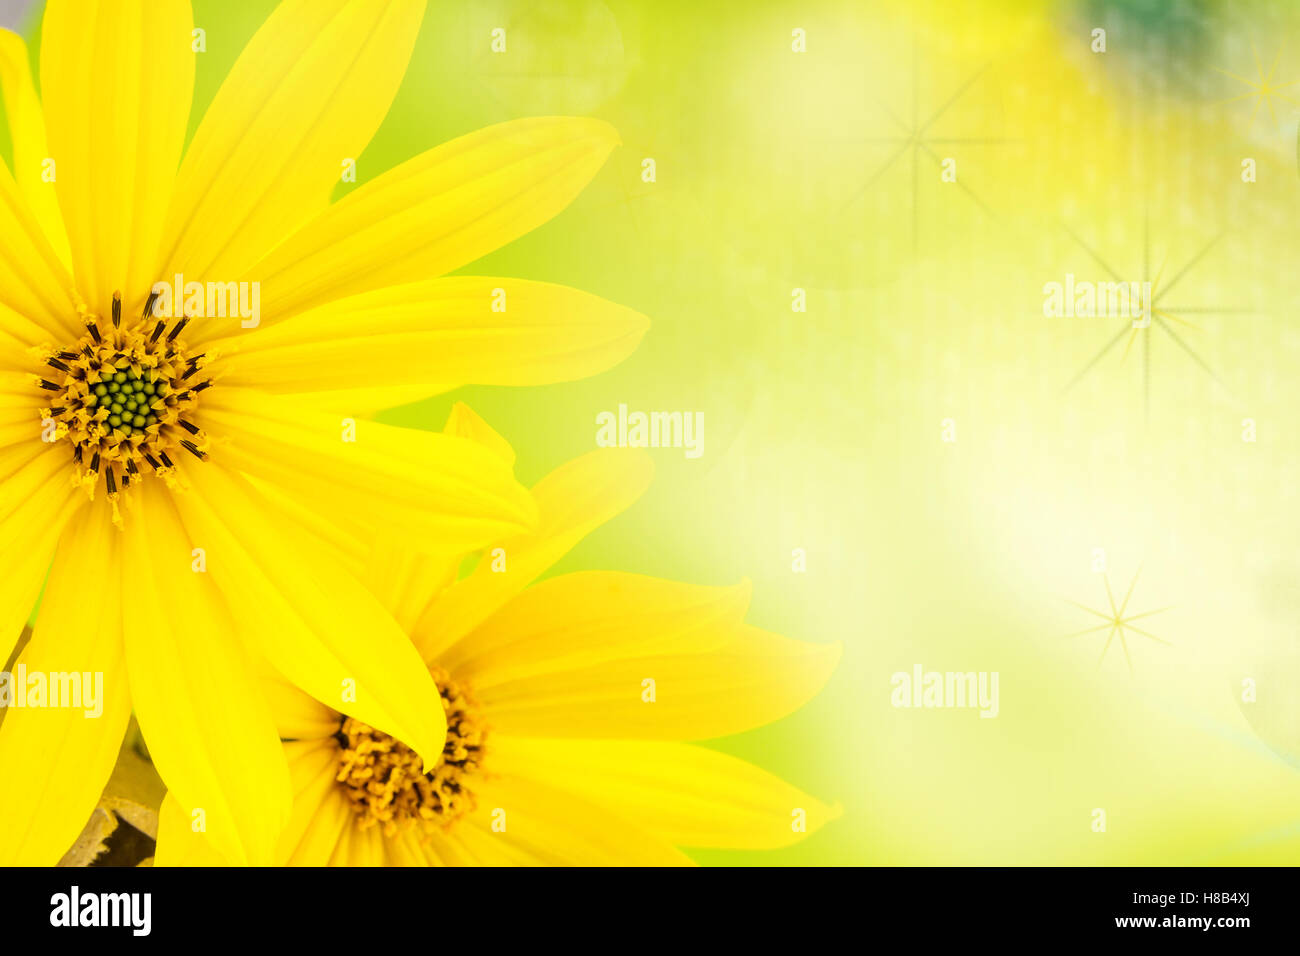 Yellow Flower With Thin Petals On Light Natural Green Background